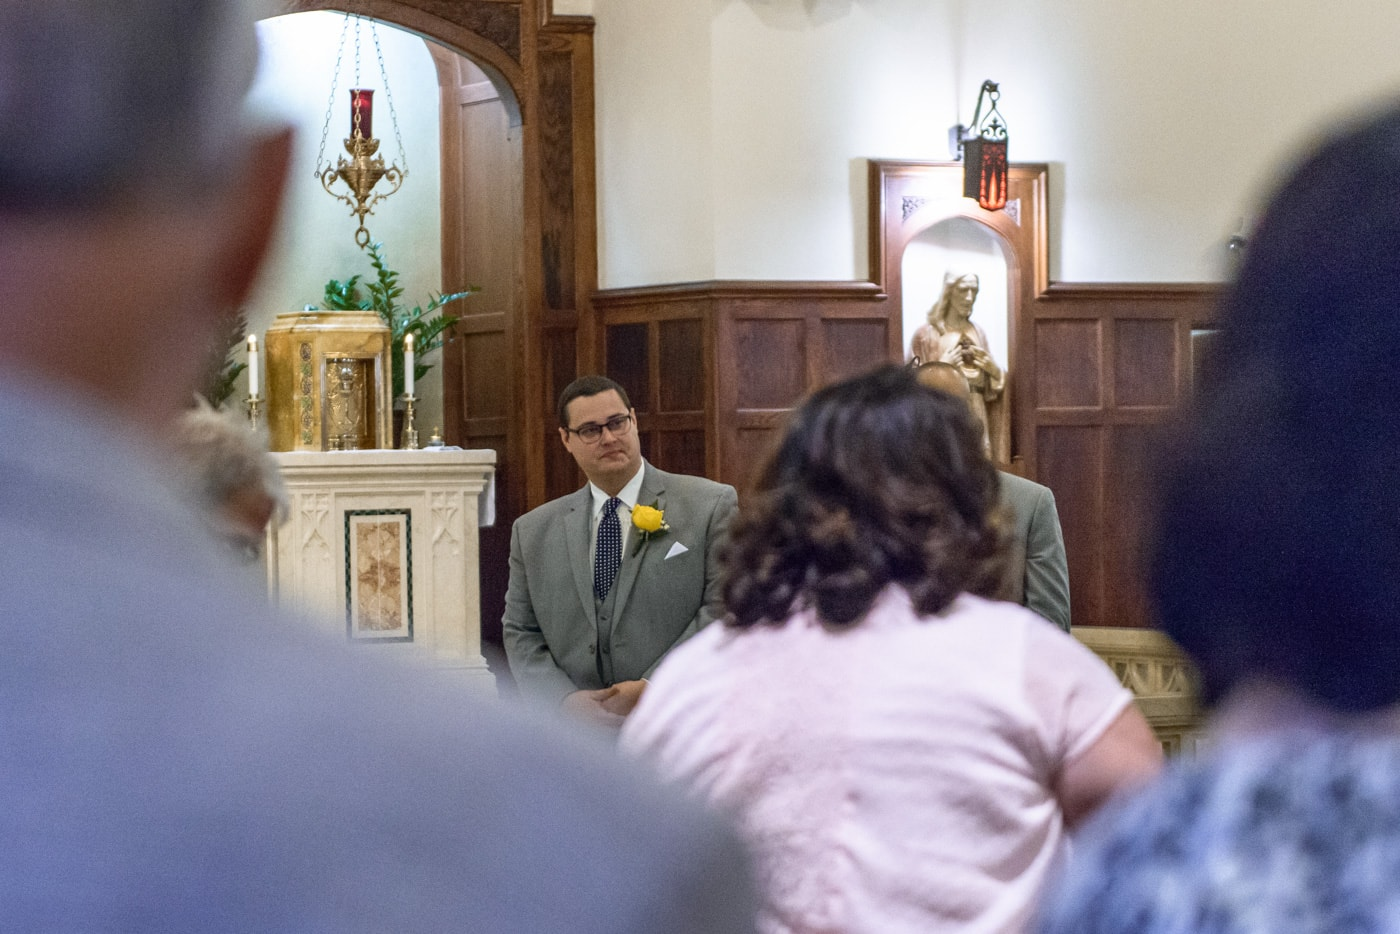 The groom gets emotional as he watches his bride walk down the aisle at St James Catholic Church in Falls Church, Virginia